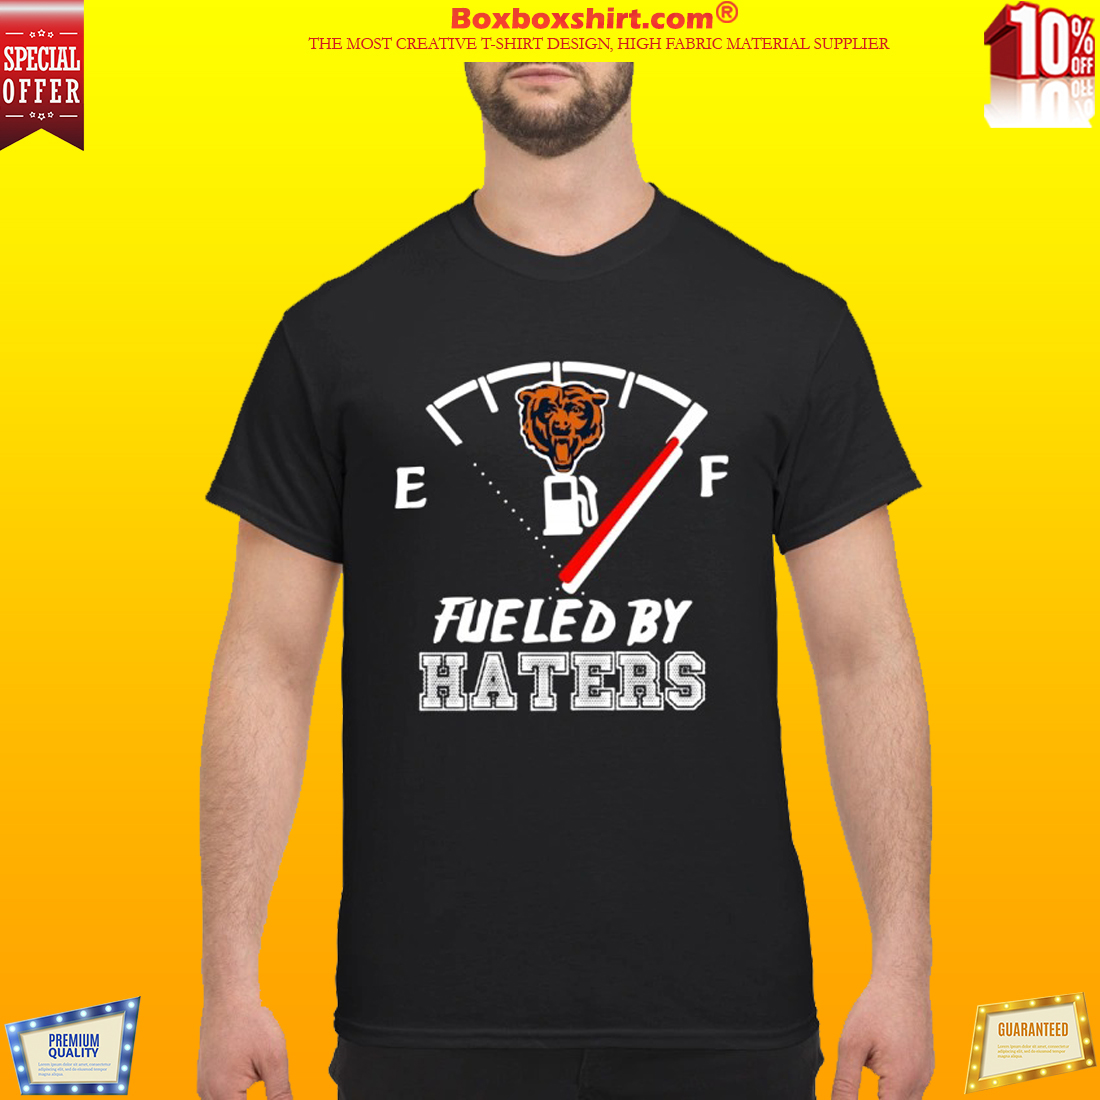 Chicago bears fueled by haters classic shirt